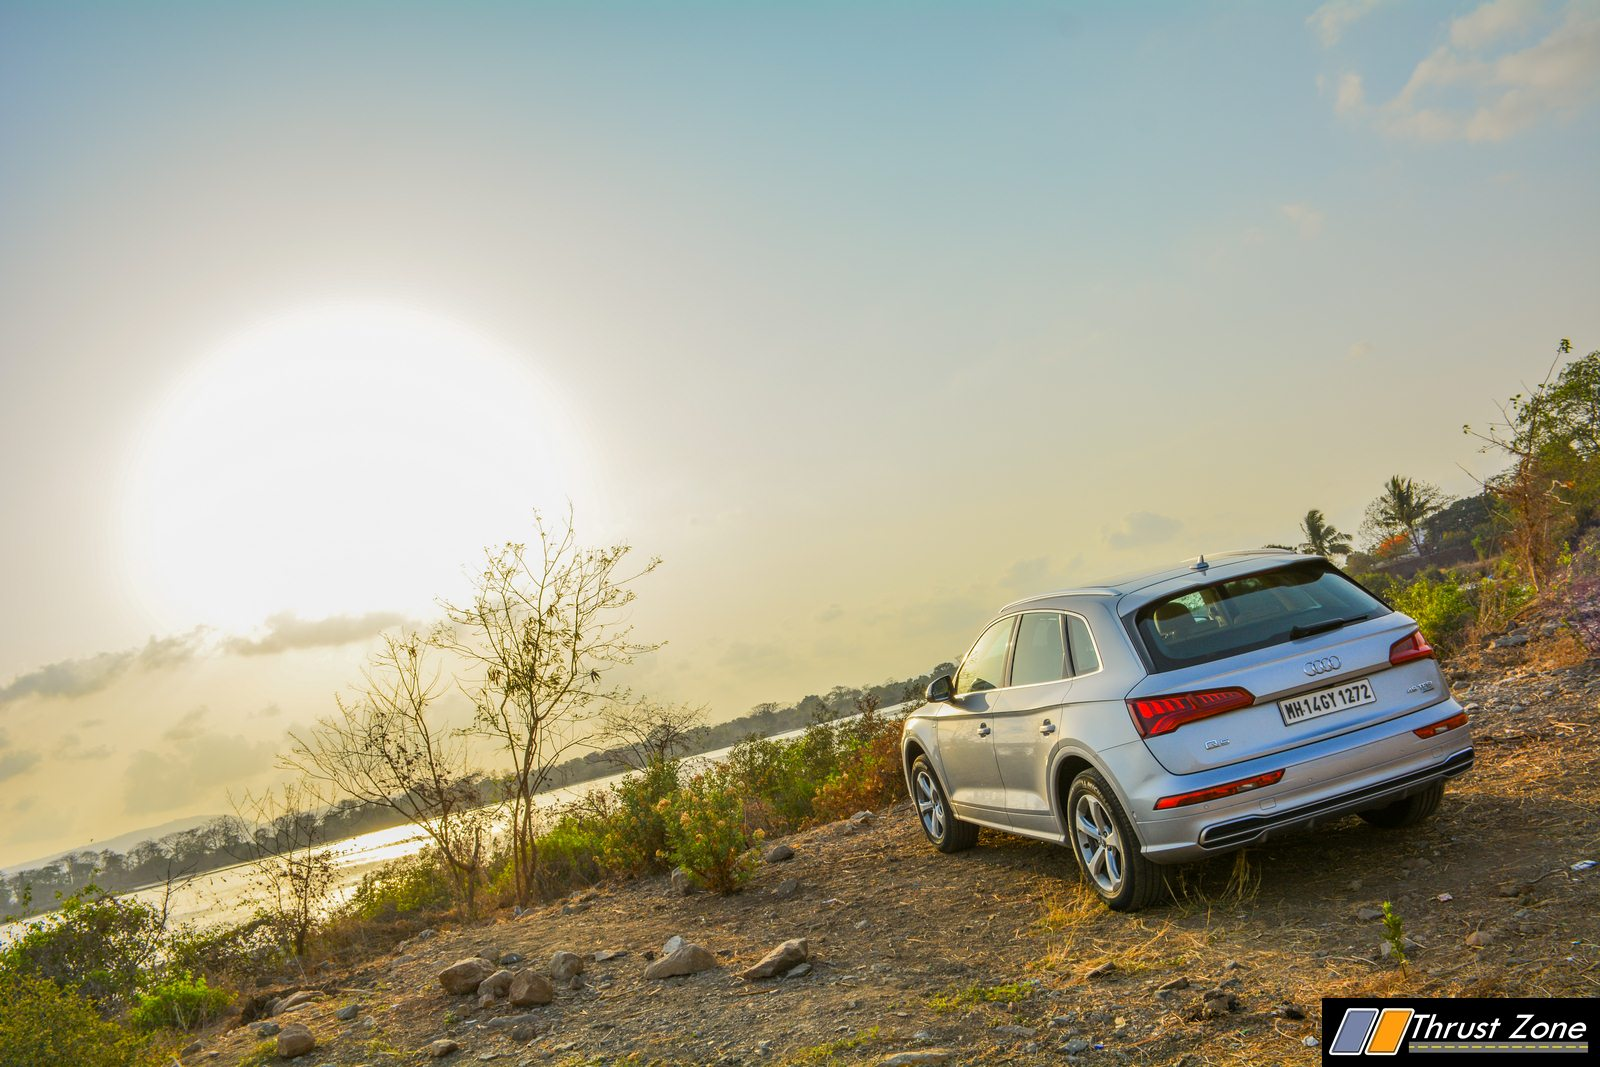 https://www.thrustzone.com/wp-content/uploads/2019/06/2019-Audi-Q5-Petrol-India-Review-18.jpg